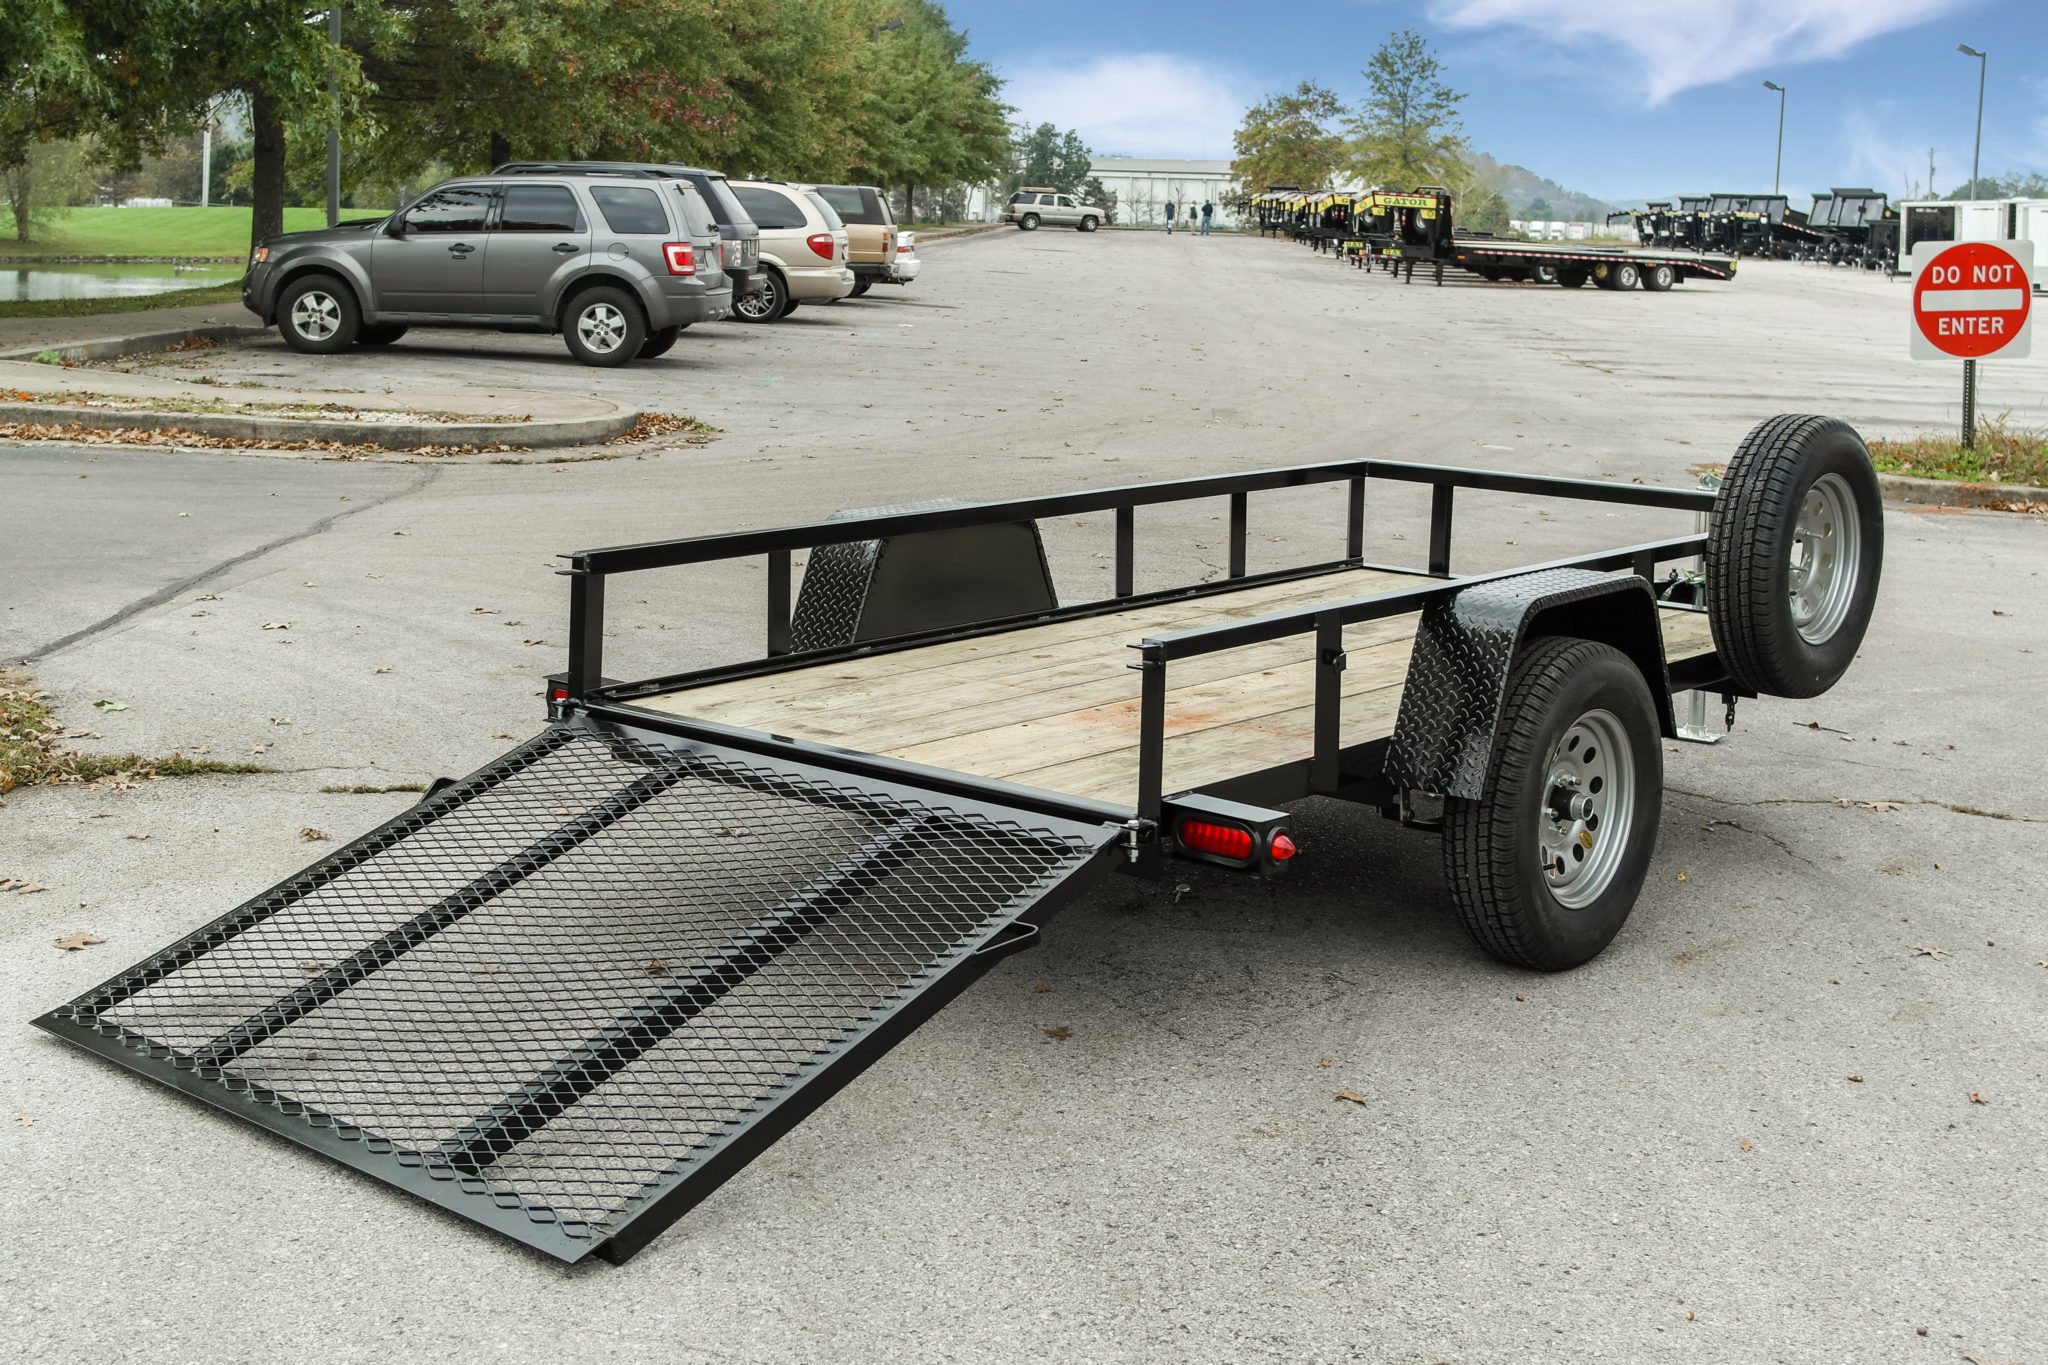 Lovely Utility Trailer Lights Not Working Images - Everything You ...